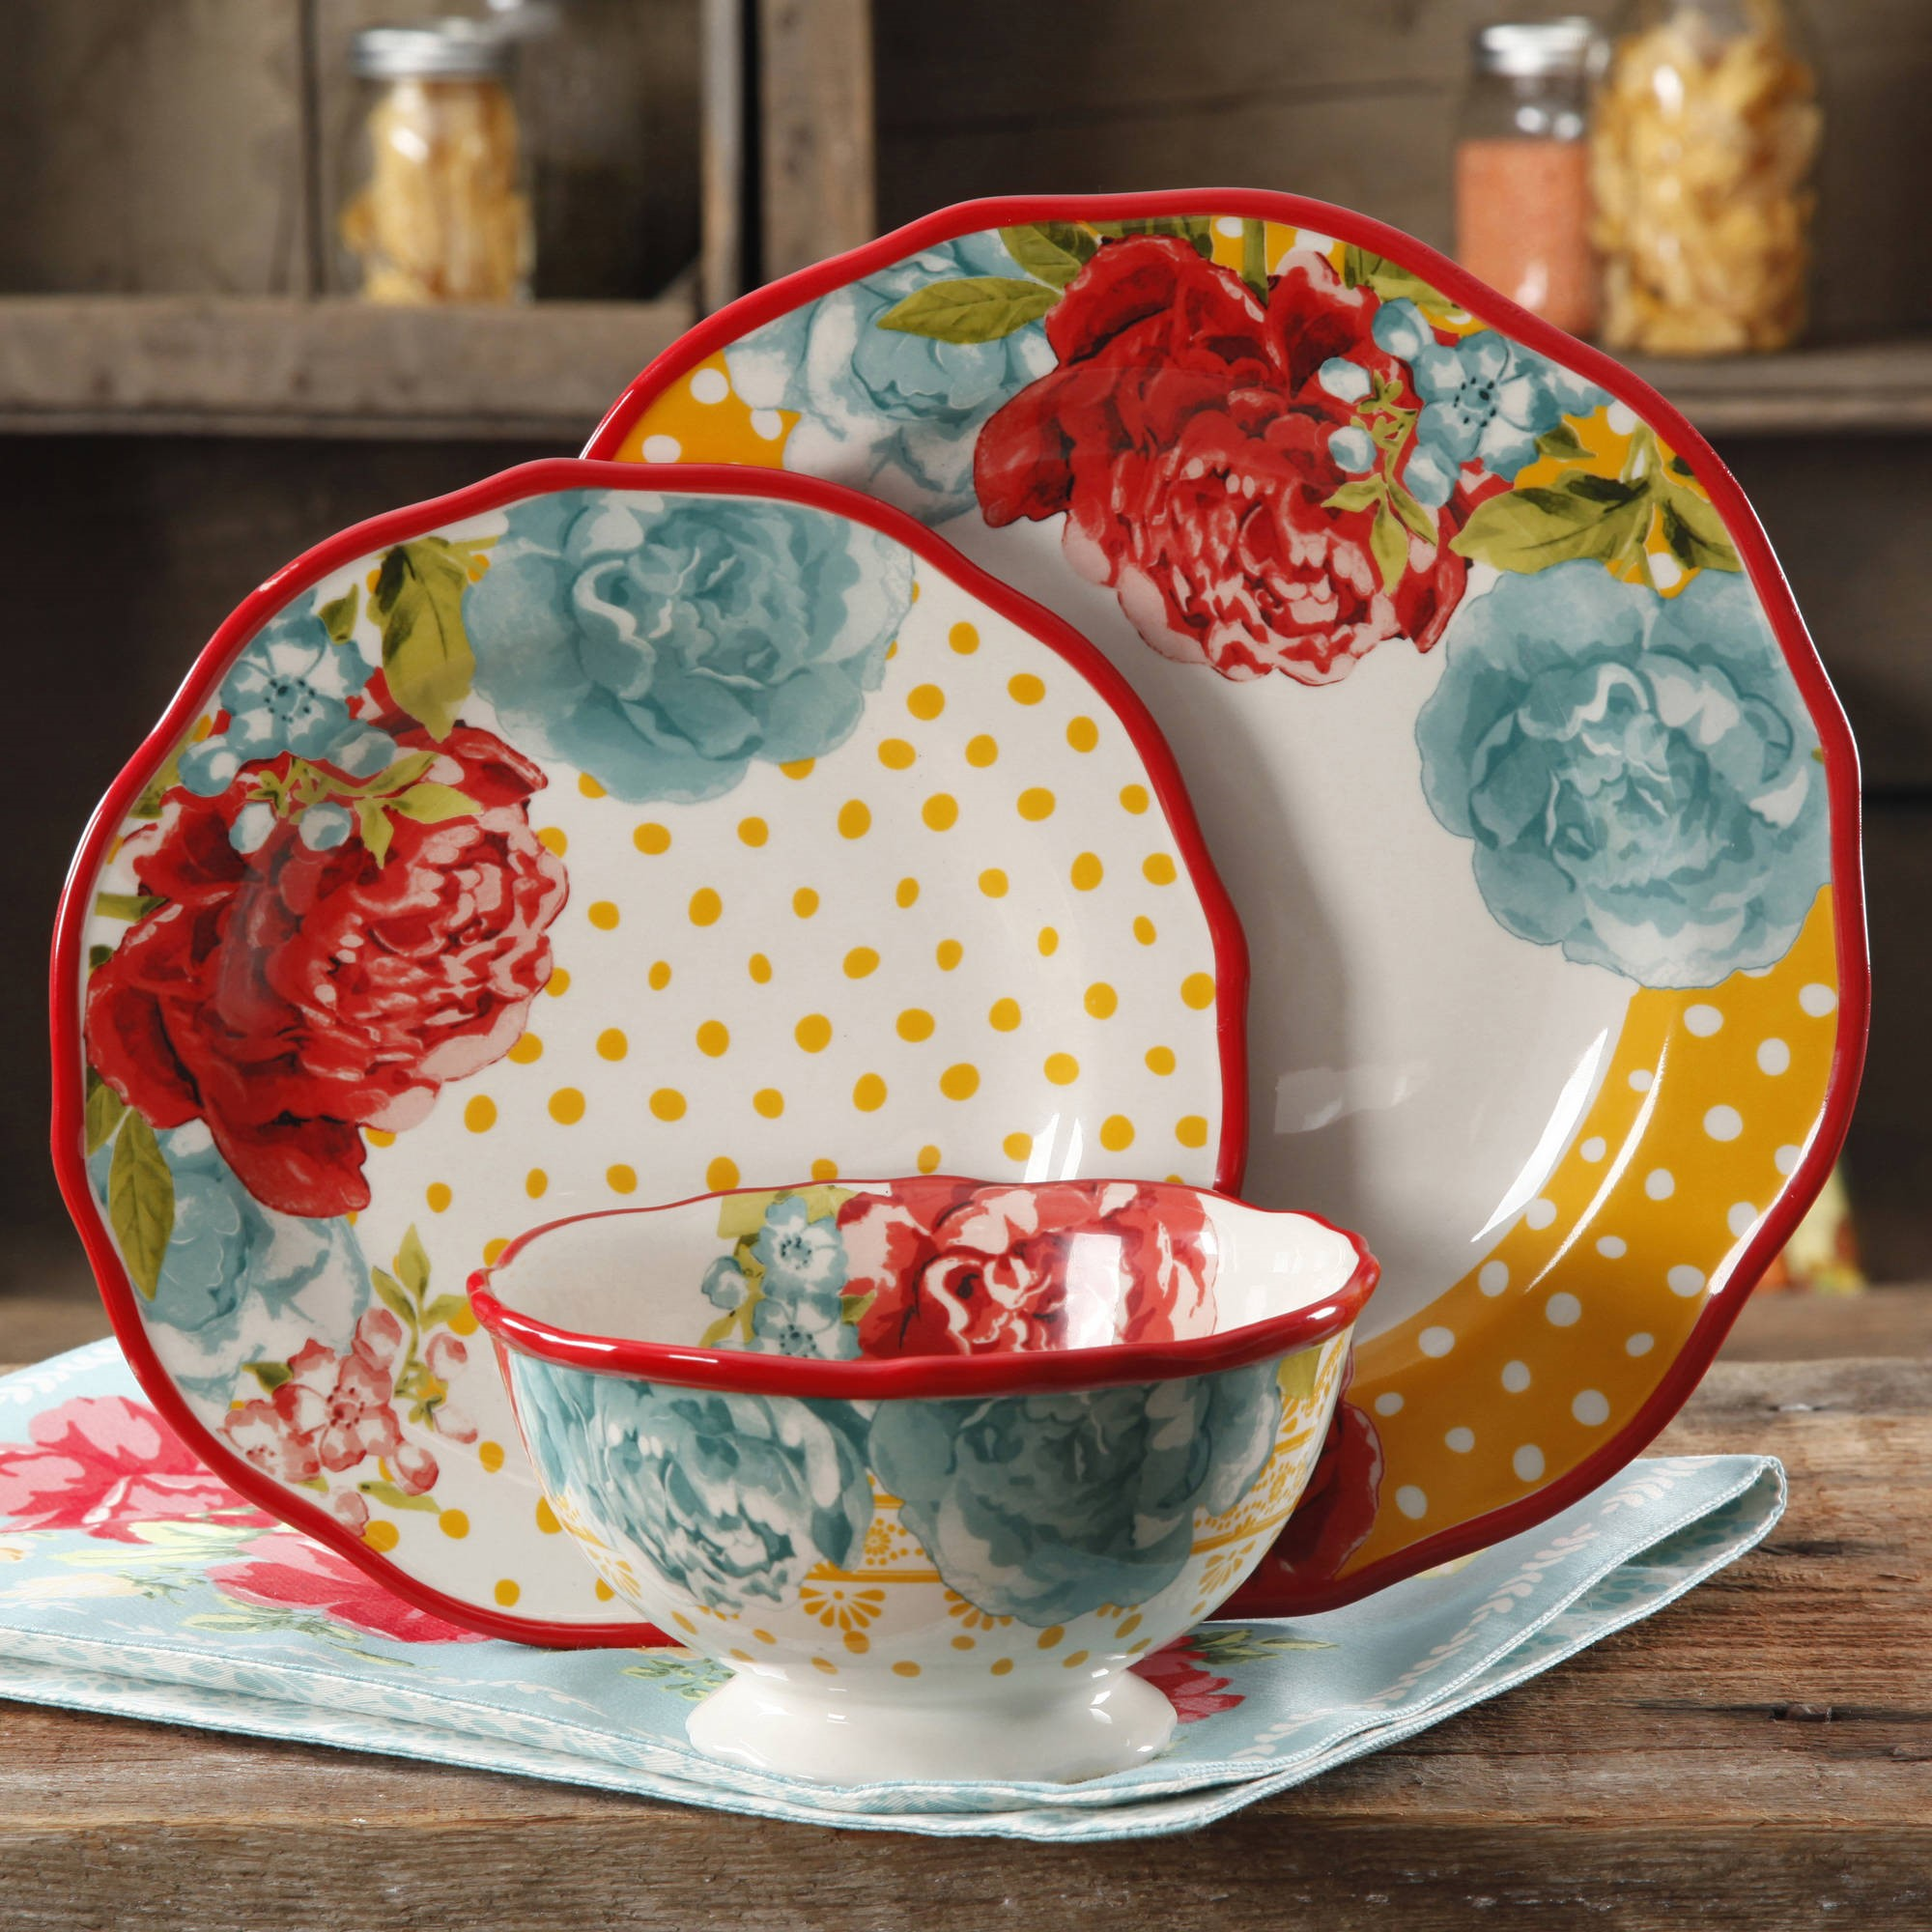 The Pioneer Woman 12-Piece Dinnerware Set, Walmart Exclusive